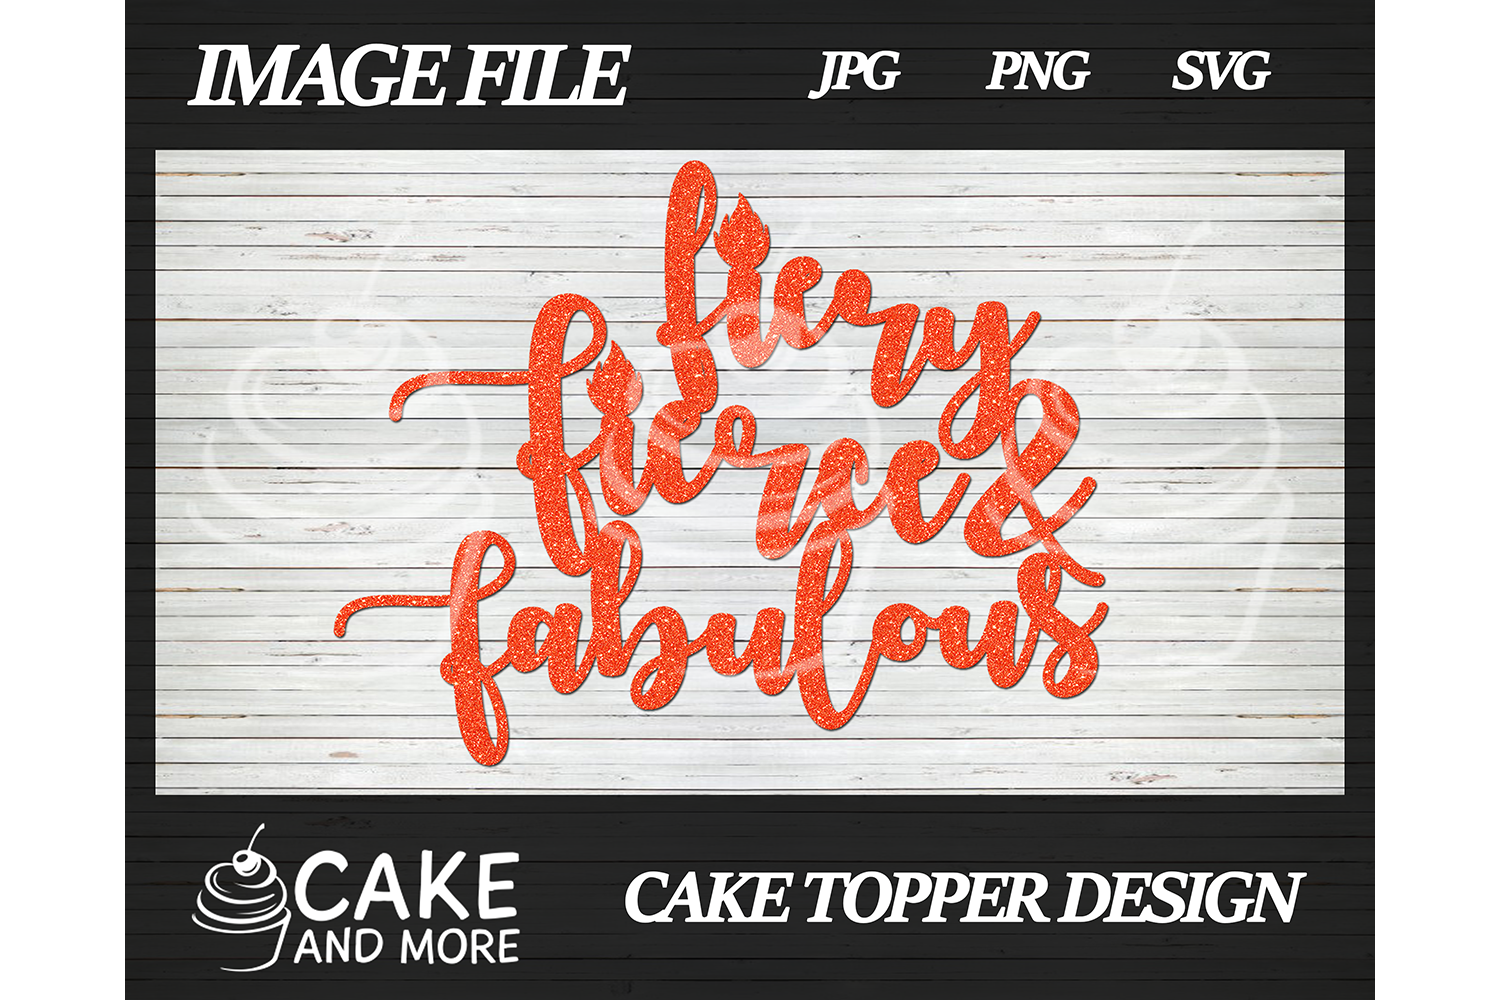 Download Free Fiery Fierce Fabulous Cake Topper Graphic By Lookitzcake for Cricut Explore, Silhouette and other cutting machines.